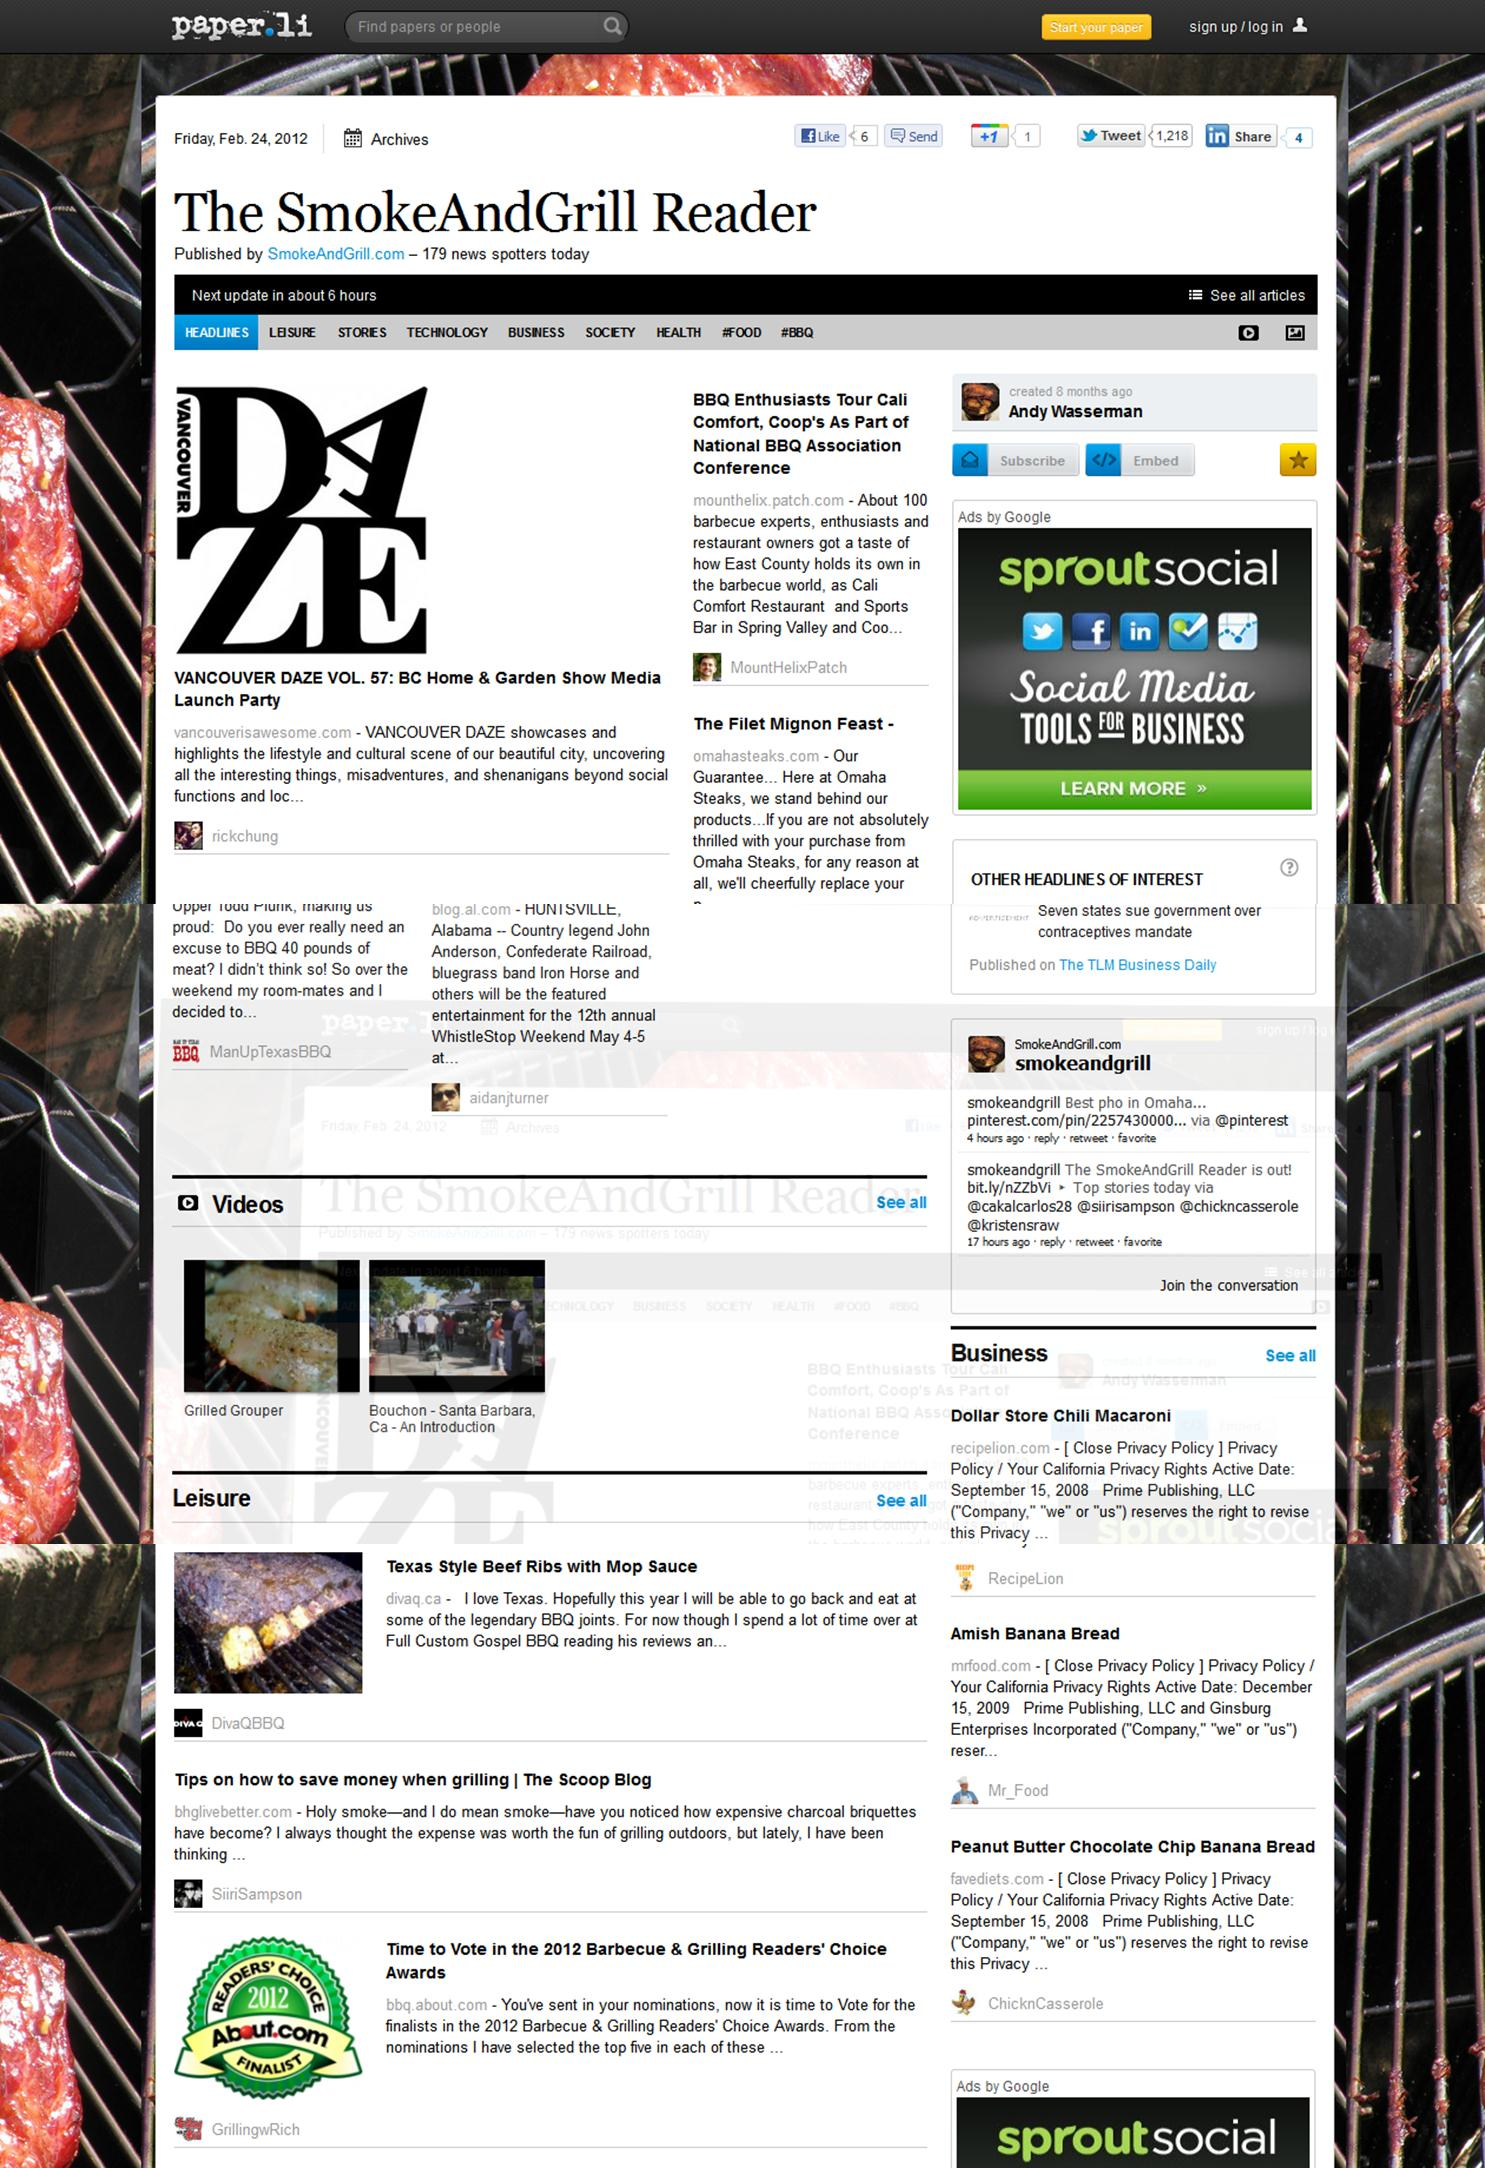 Sampson_The Smoke And Grill Reader Paper_Tweet Coverage_022412.jpg